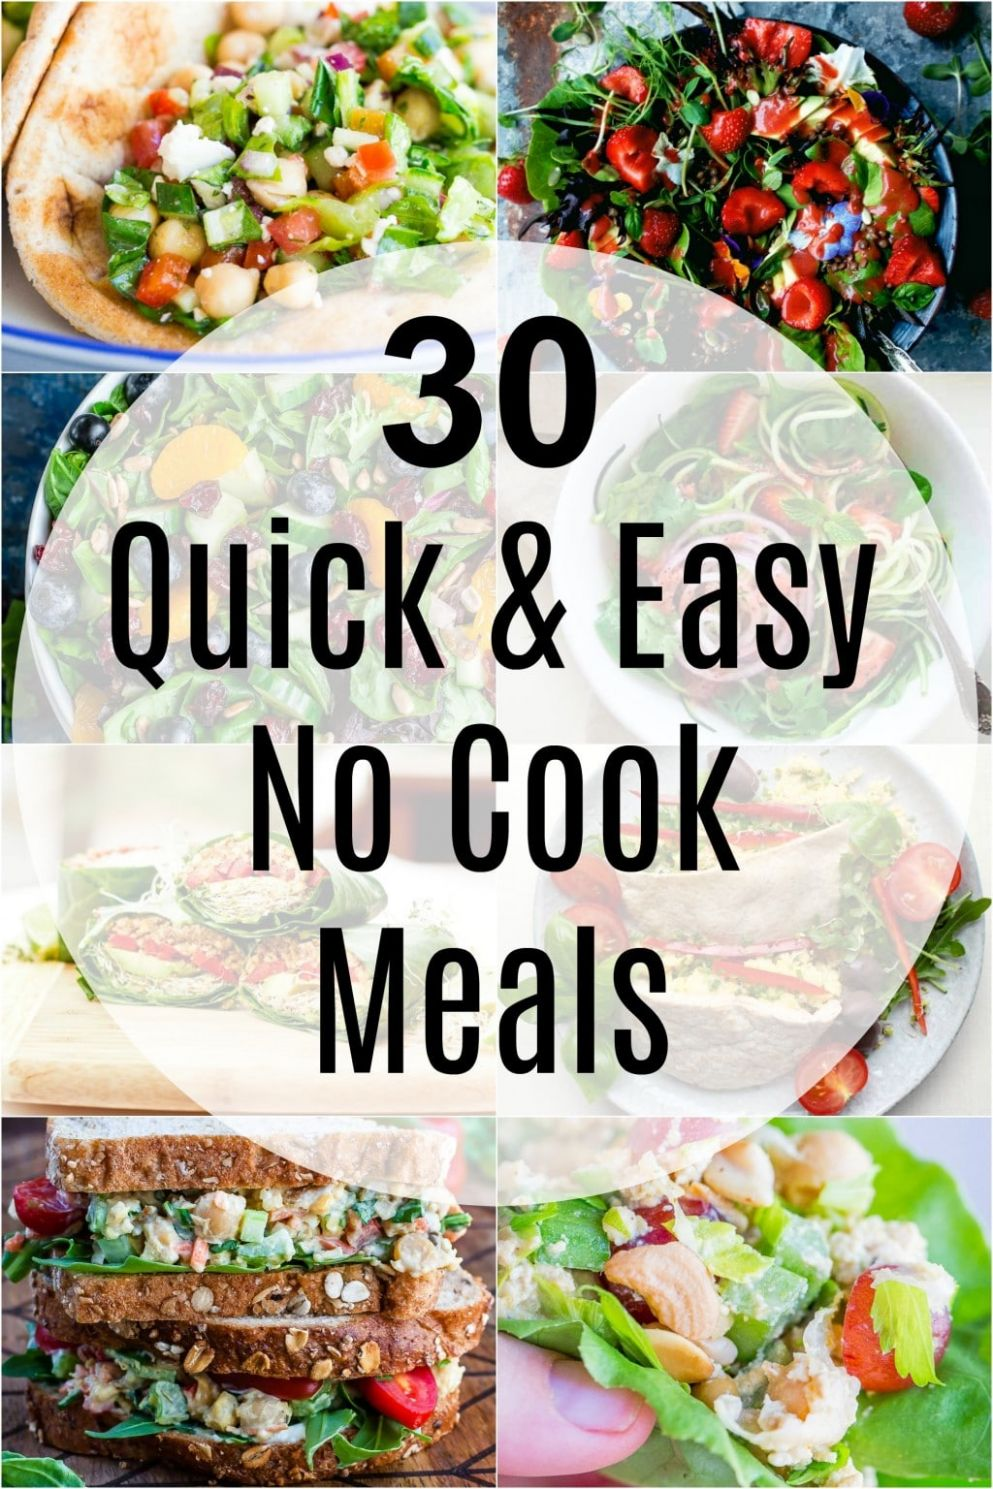 12 Quick and Easy No Cook Meals - She Likes Food